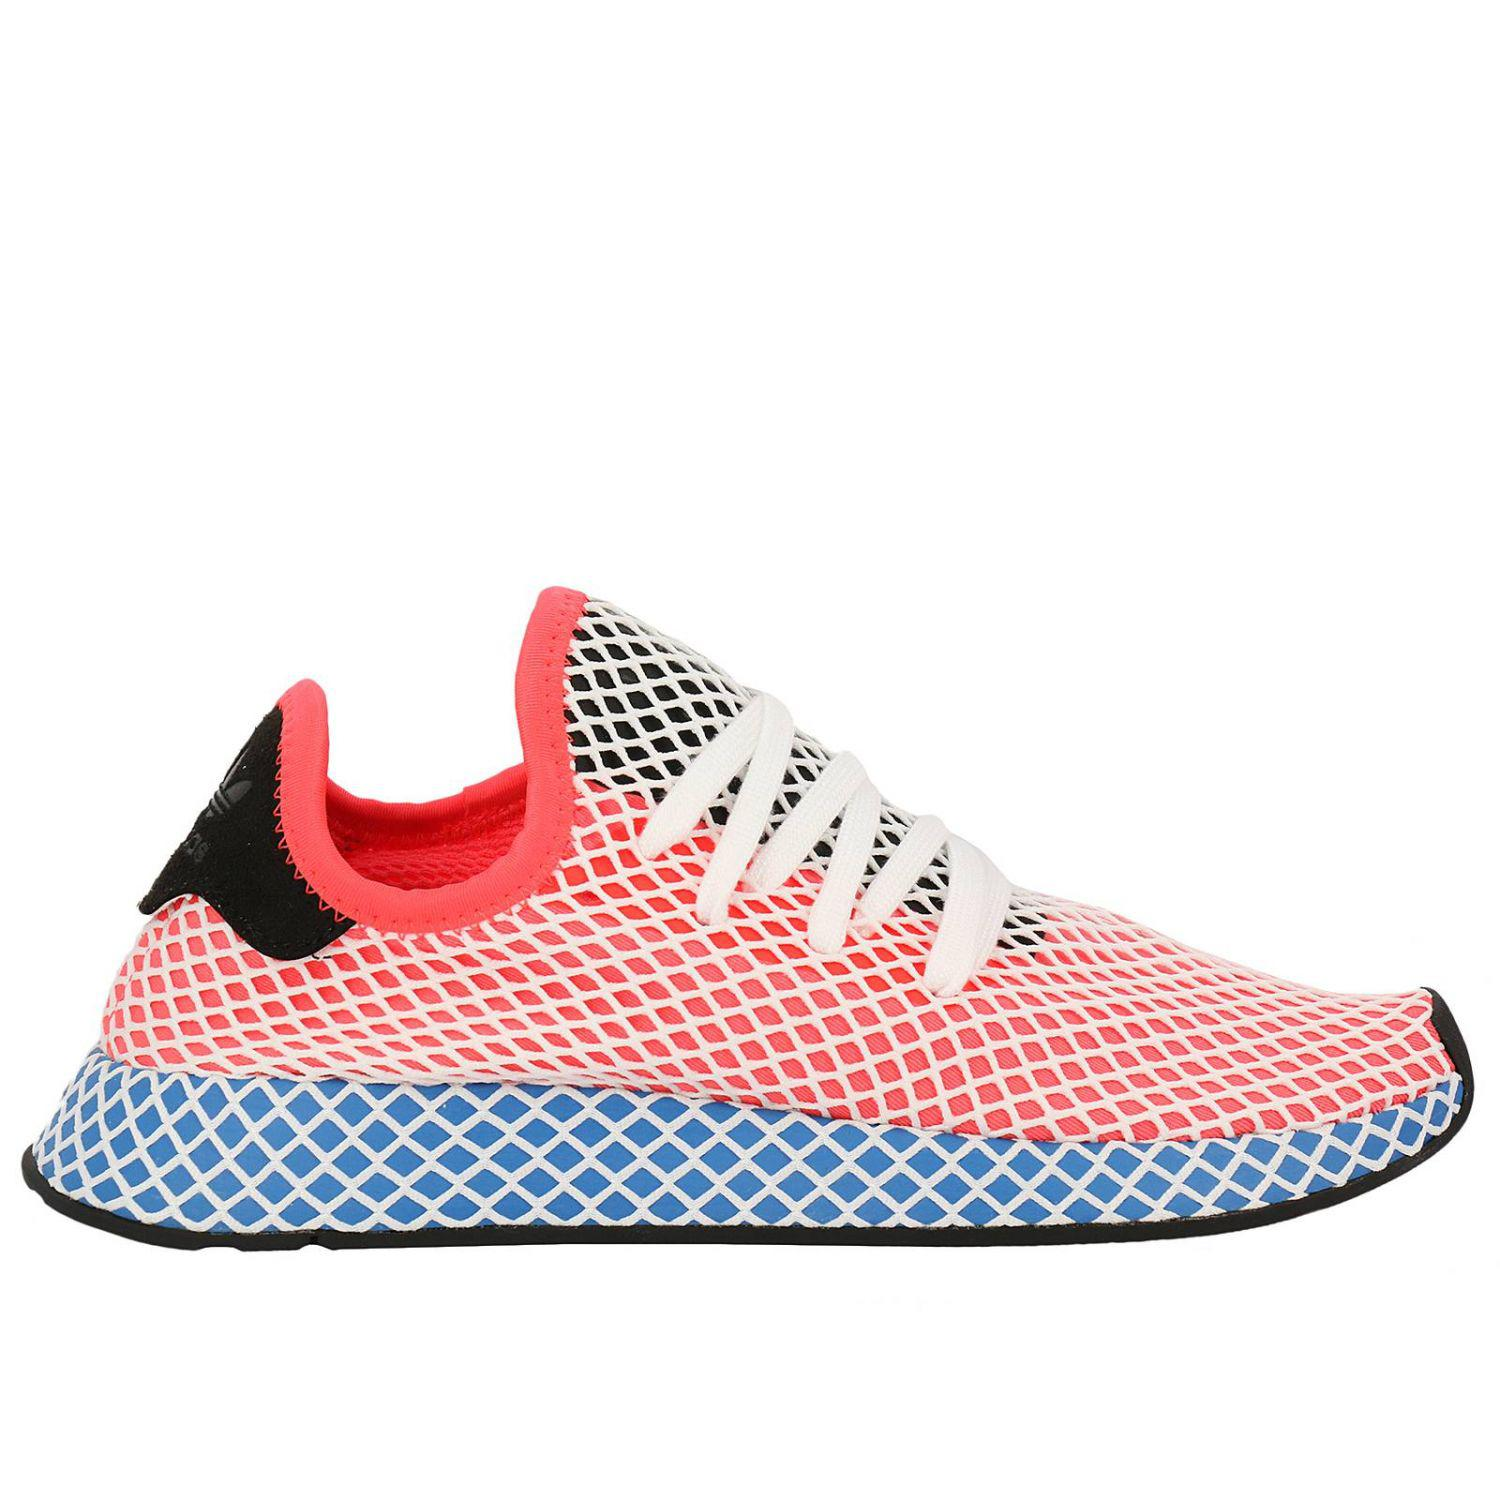 cfab9466 adidas-originals-Orange-Adidas-Deerupt-Runner-Sneakers-In-Knit-And -Mesh-Stretch-Net-Effect.jpeg